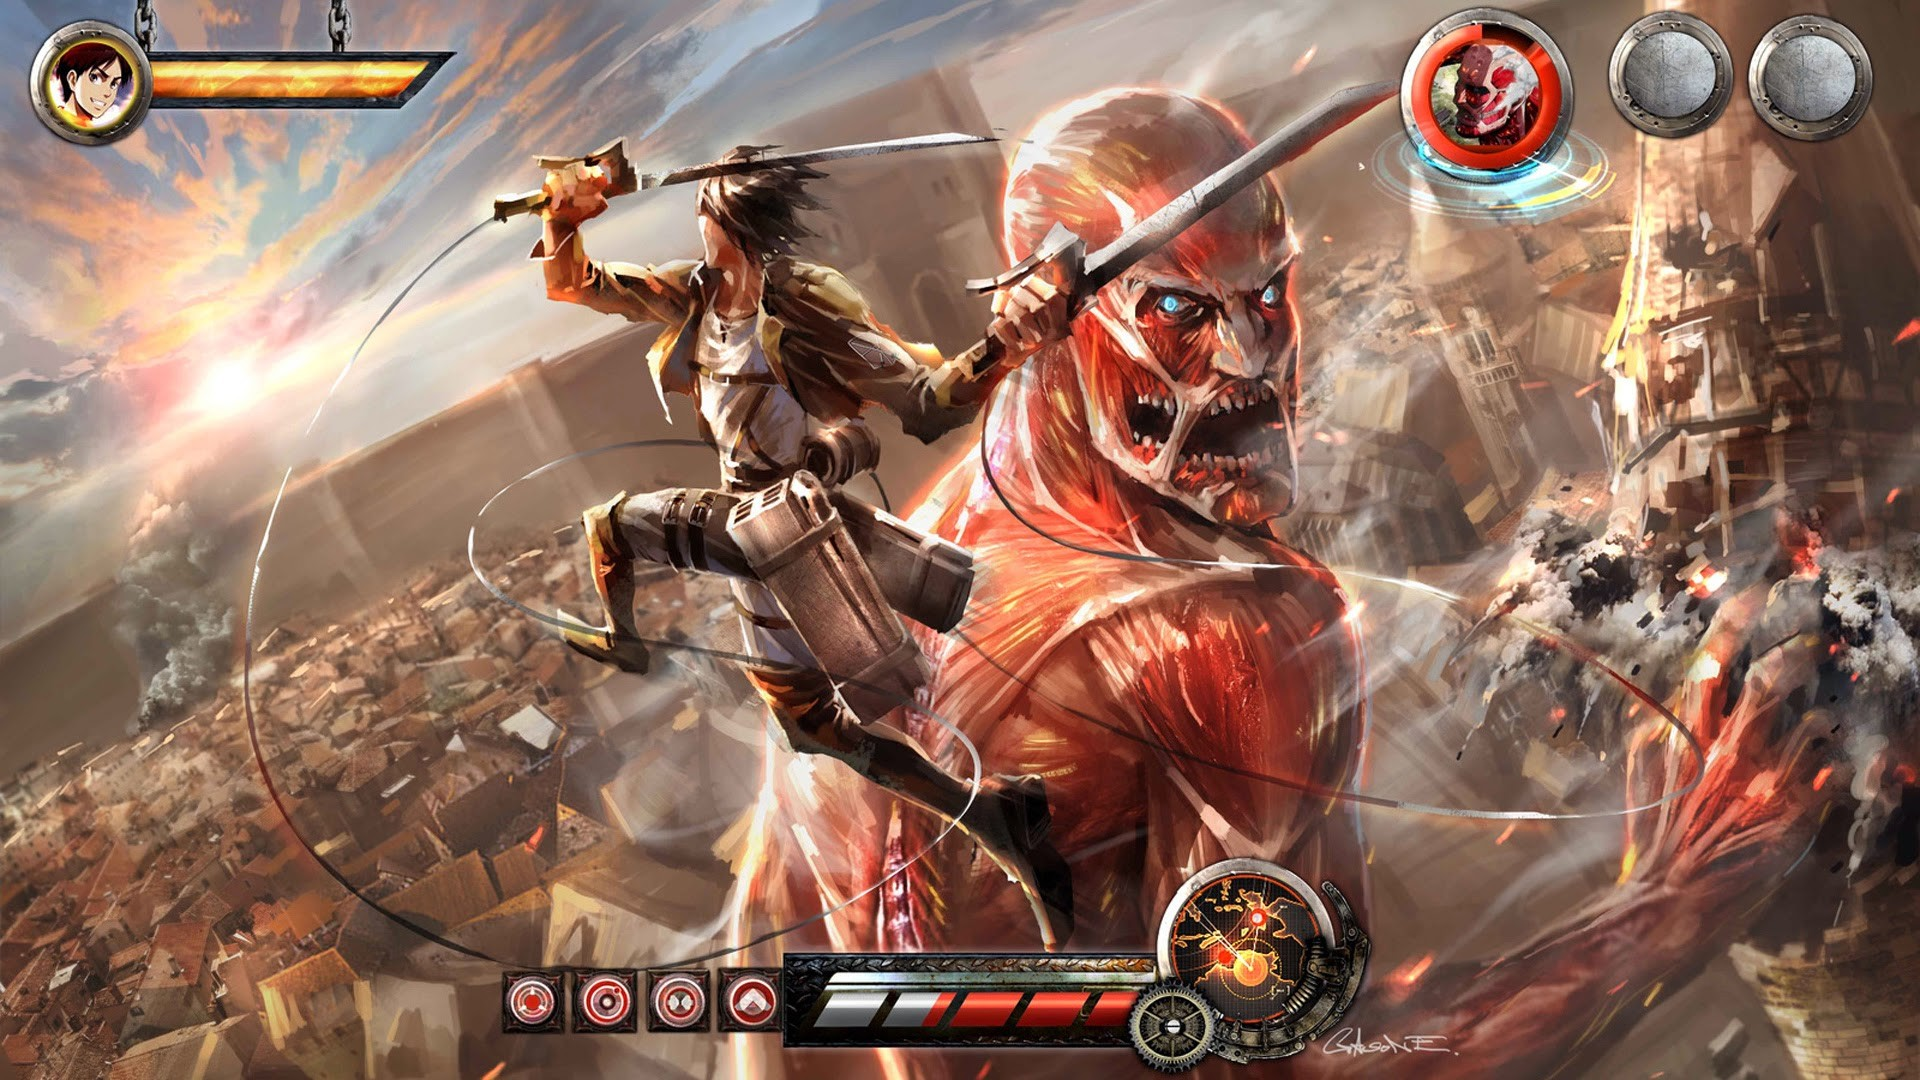 Attack On Titan Wallpaper Hd 64 Images